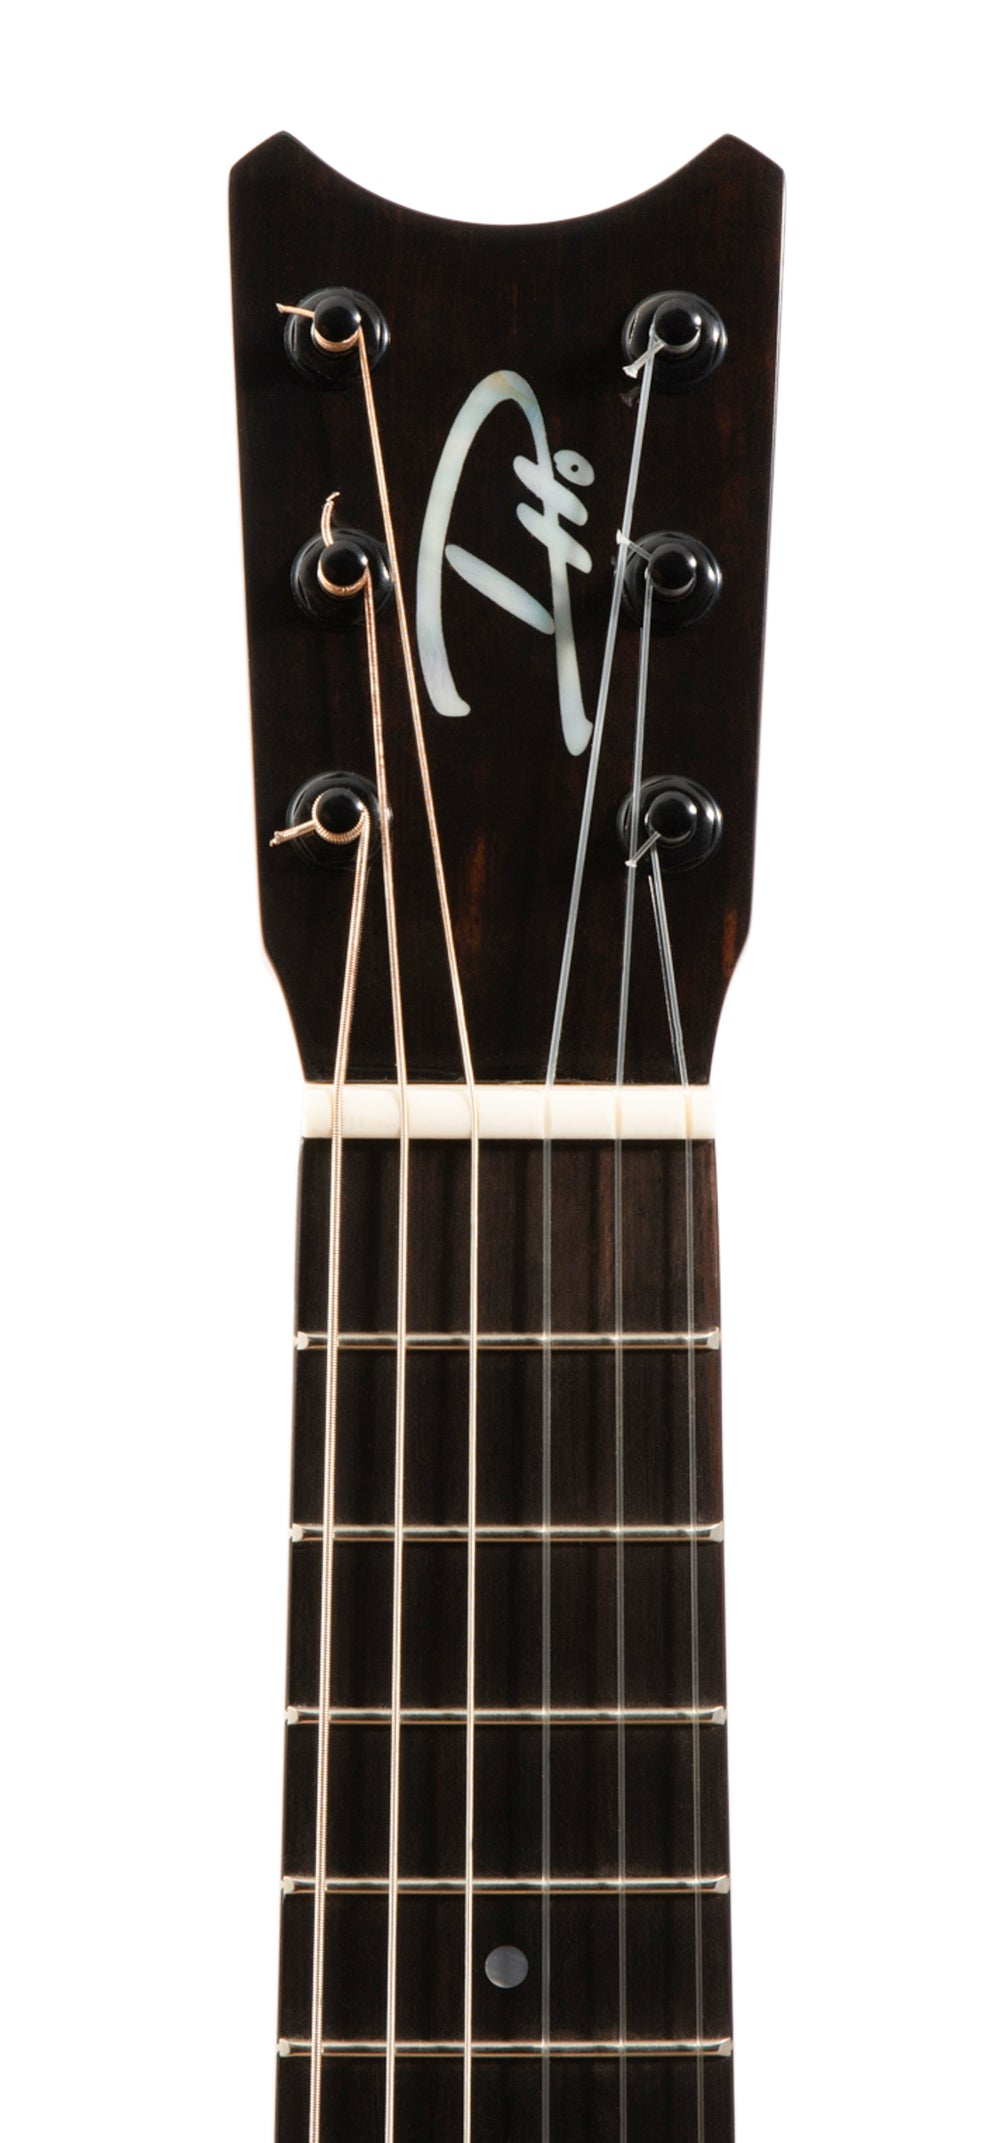 "Romero Creations RC-TT6-K Tiny Tenor 6 String Koa Guilele ""Athena"" Tuned A to A"